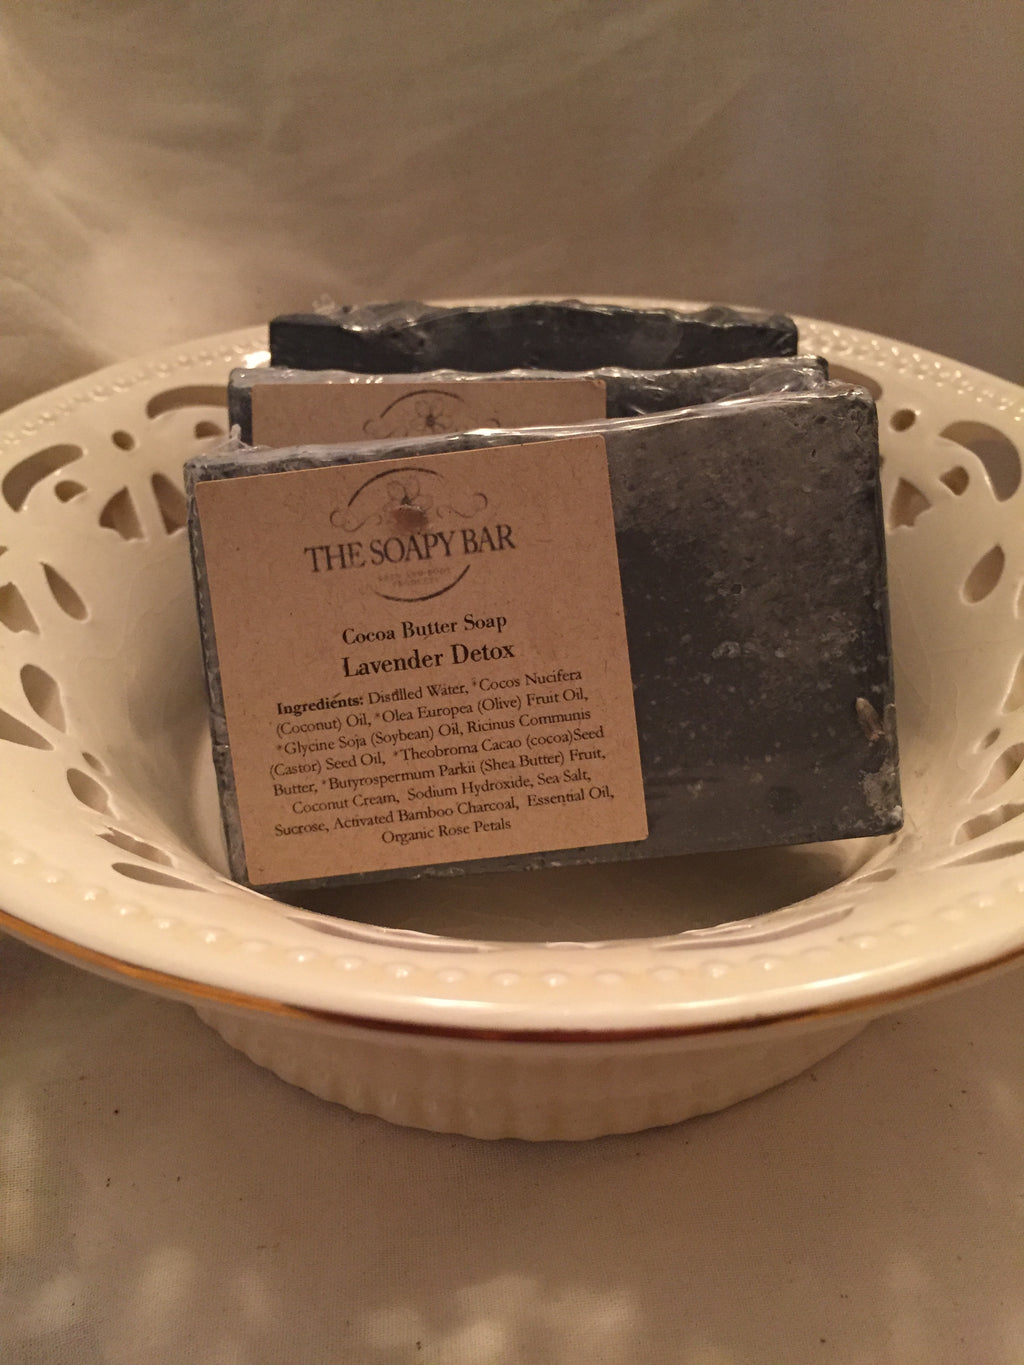 Roses Charcoal Detox Soap - thesoapybar